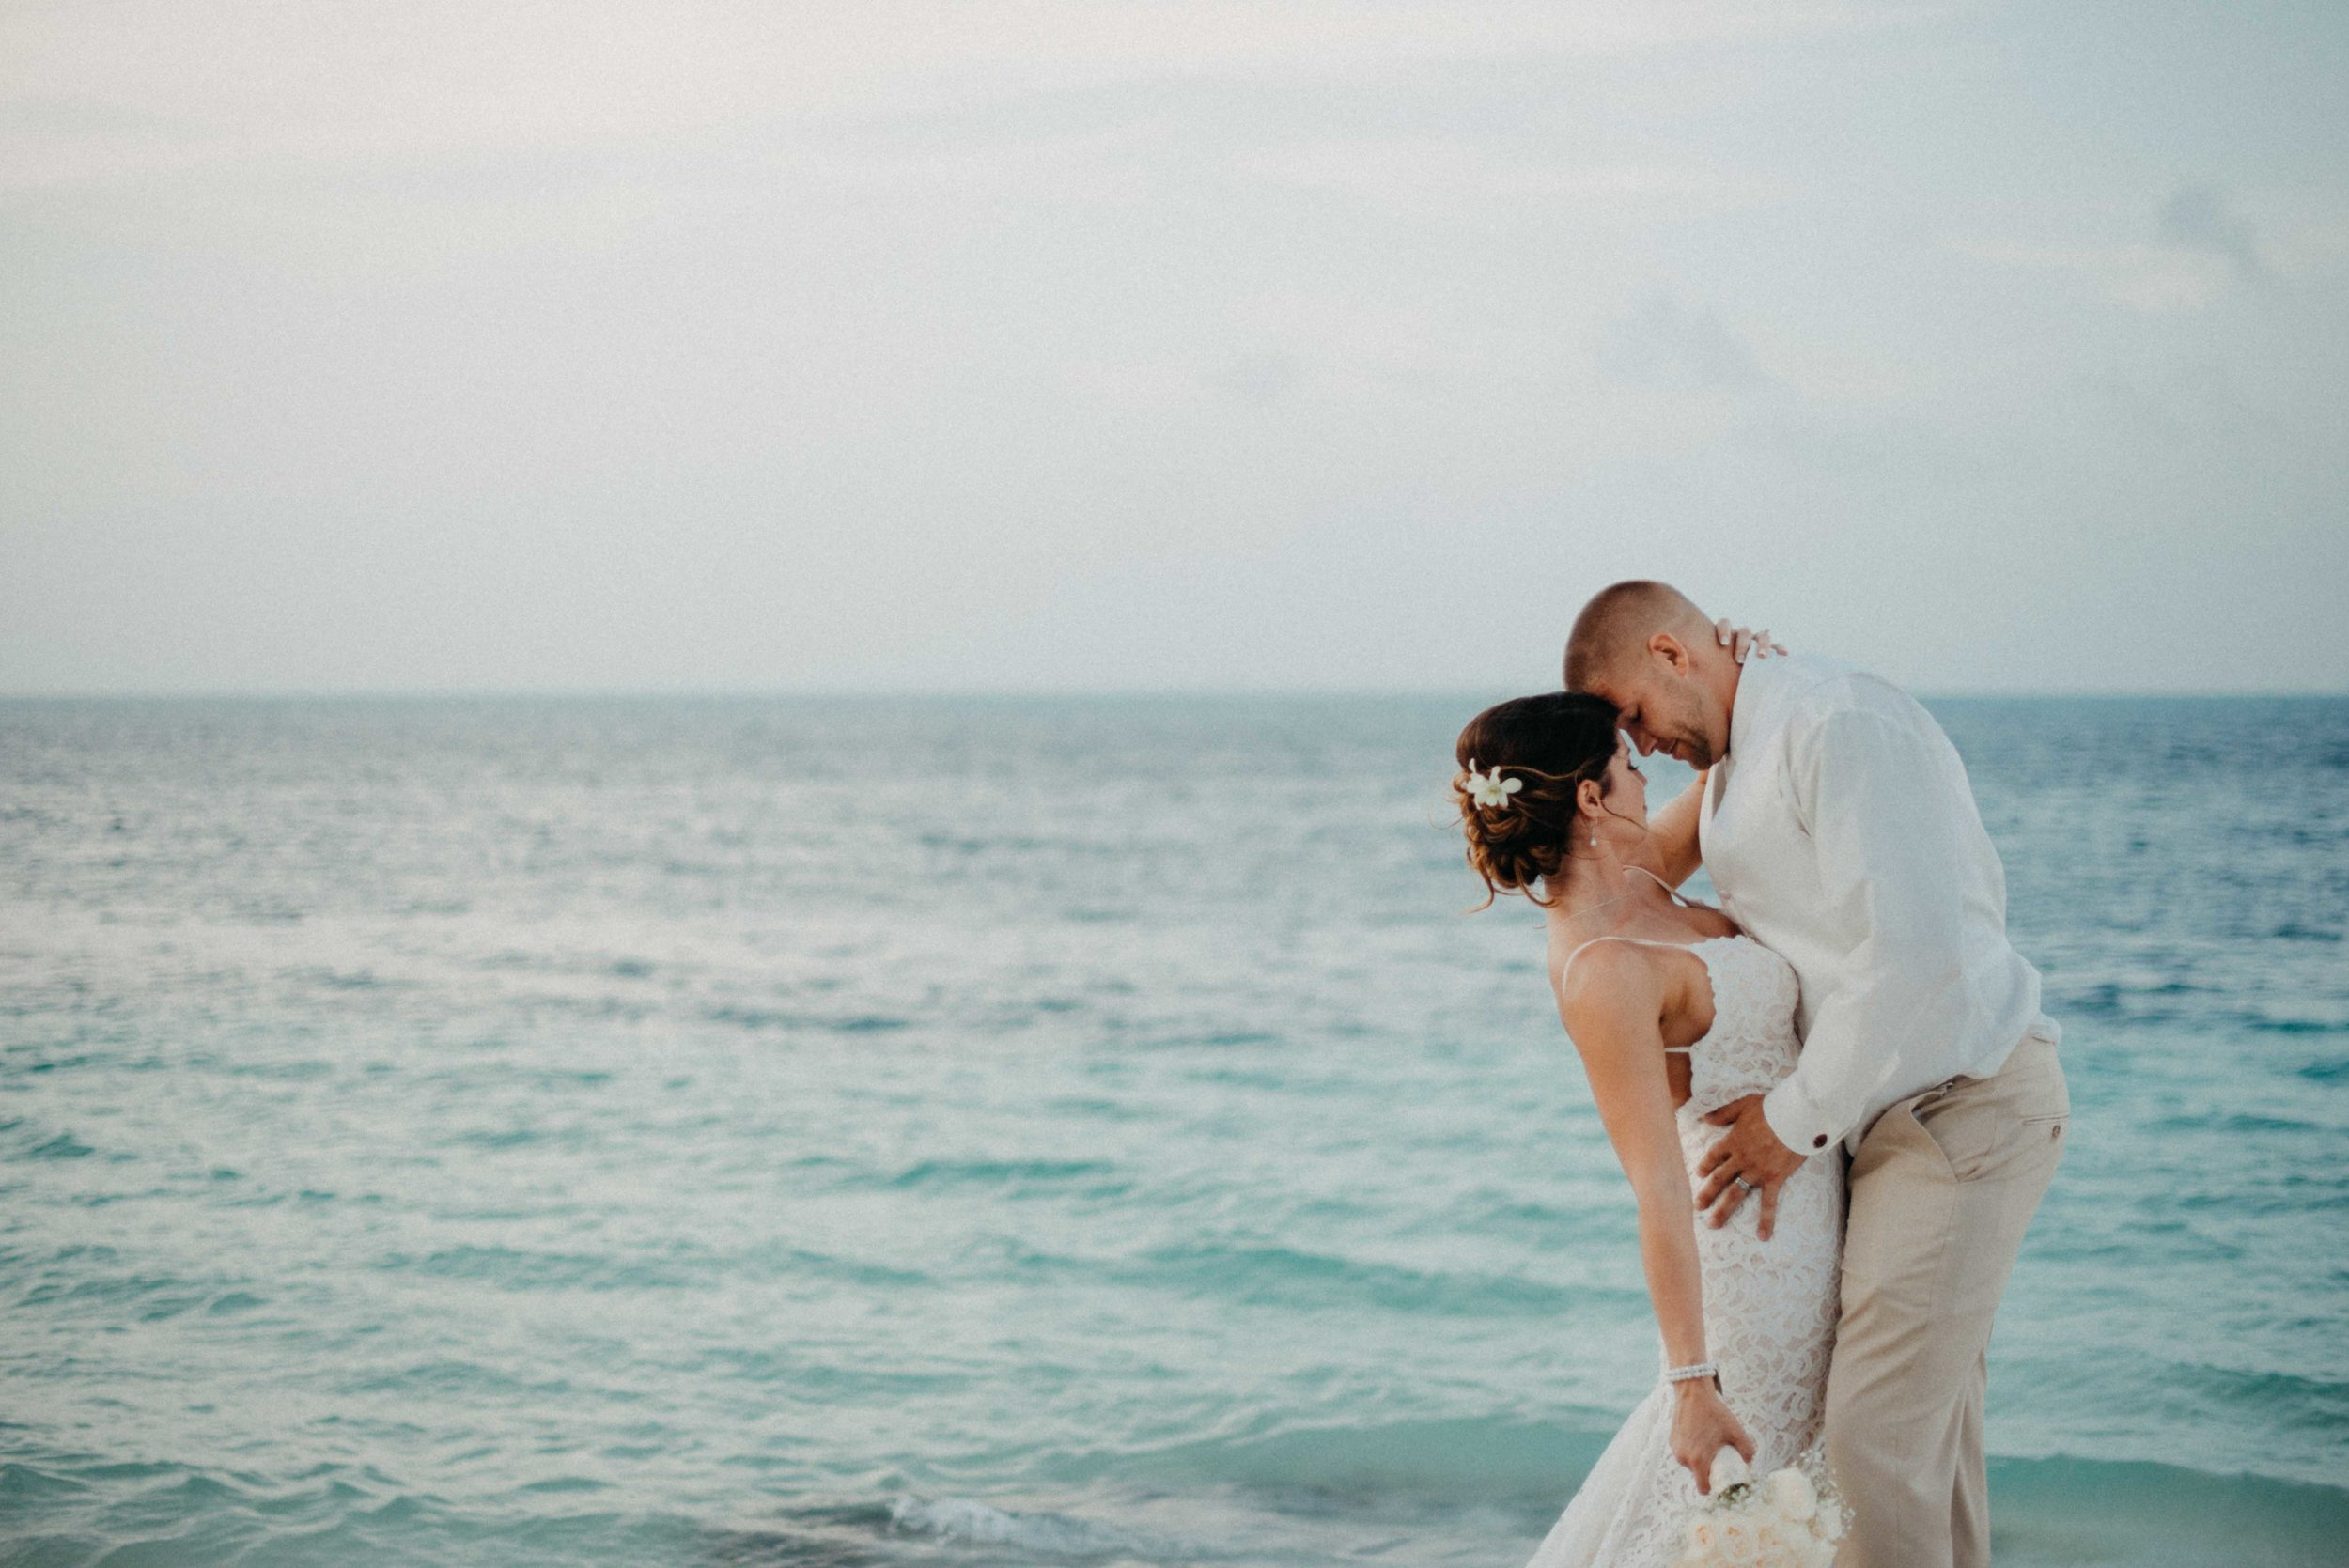 Beach-Wedding-Photography-Cancun-Elopement-Destination-Elopement-Photography-Destination-Beach-Wedding-+Costa-Rica-Wedding-Photography-Beach-Wedding-Photos-teresawoodhull-Cancun-Elopement-Beach-Wedding-+Sunset-Beach-Wedding-Fotografia-de-bodas-Nicoya-Peninsula-Elopement-Photographer-Santa-Teresa-Elopement-Photographer-Adventure-elopement-photographer-Santa-Teresa-Wedding-Photographer-Adventure-Wedding-Boda-playa-santa-teresa-Adventure-Wedding-Photography-Adventure-Wedding-Photographer-Beach-Elopement-Beach-Elopement-Photos-maddie-mae-Beach-Elopement-Photographer-Destination-Elopement-Photographer-Sunset-Beach-Elopement-Mexico-wedding-photographer-cabo-wedding-photographer-mexico-wedding-mexico-destination-wedding-cancun-destination-wedding-cancun-elopement-photographer-playa-del-carmen-wedding-playa-del-carmen-destination-wedding-photographer-playa-del-carmen-wedding-photography-Nicoya-Peninsula-Wedding-Photography-Nicoya-Peninsula-Wedding-Photographer-Nicoya-Peninsula-Elopement-Photography-riu-destination-wedding-cancun-mexico-destination-wedding-mexico-all-inclusive-wedding-julia-tony-012